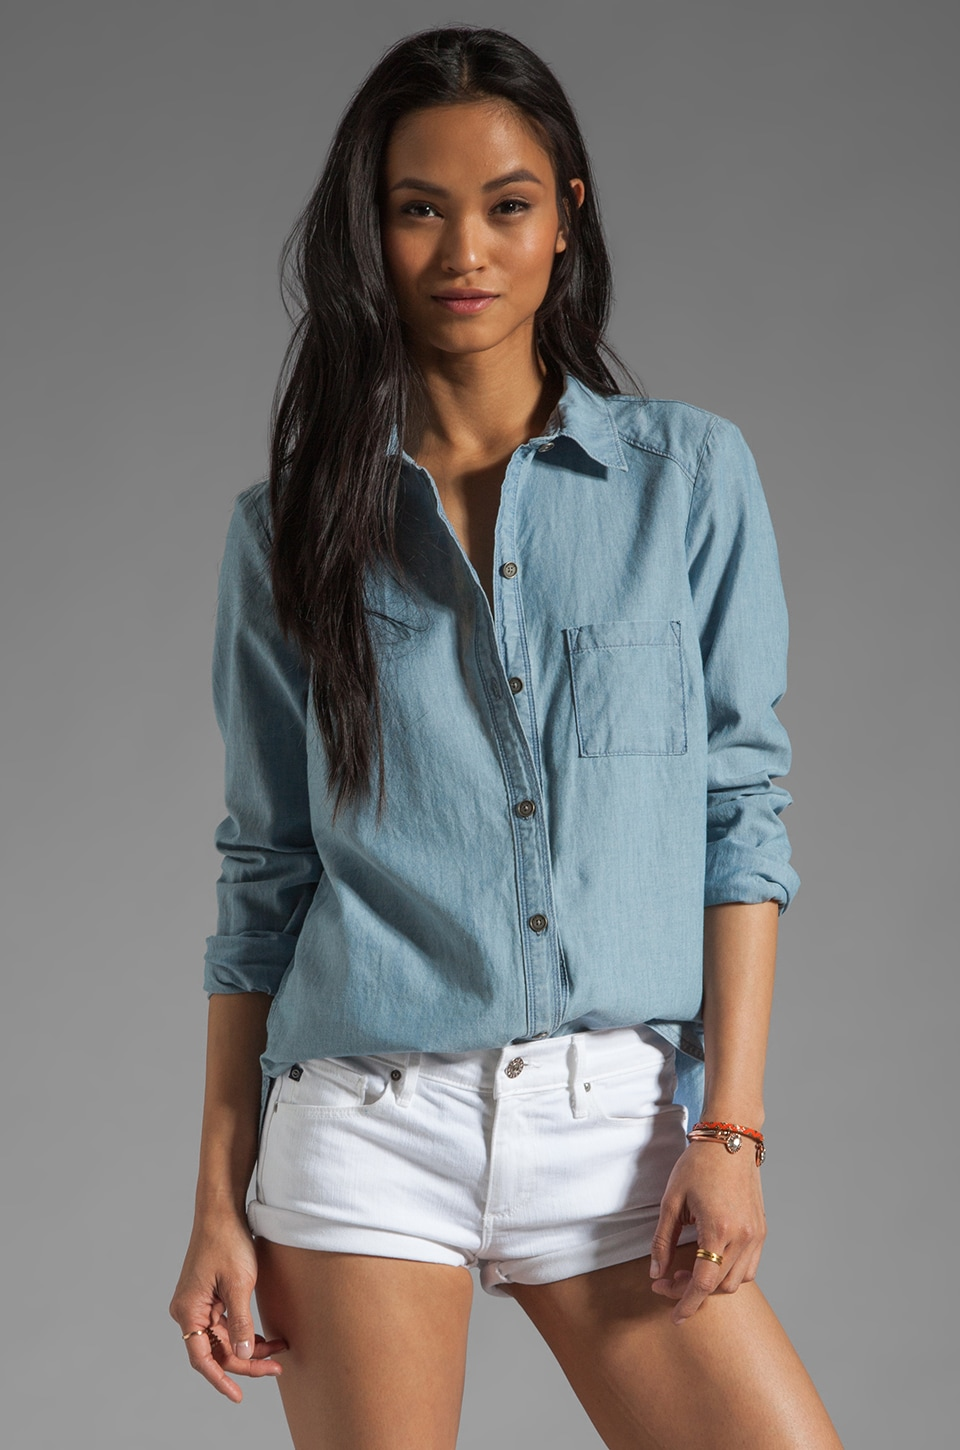 Paige Denim Eden Shirt in Ava Chambray